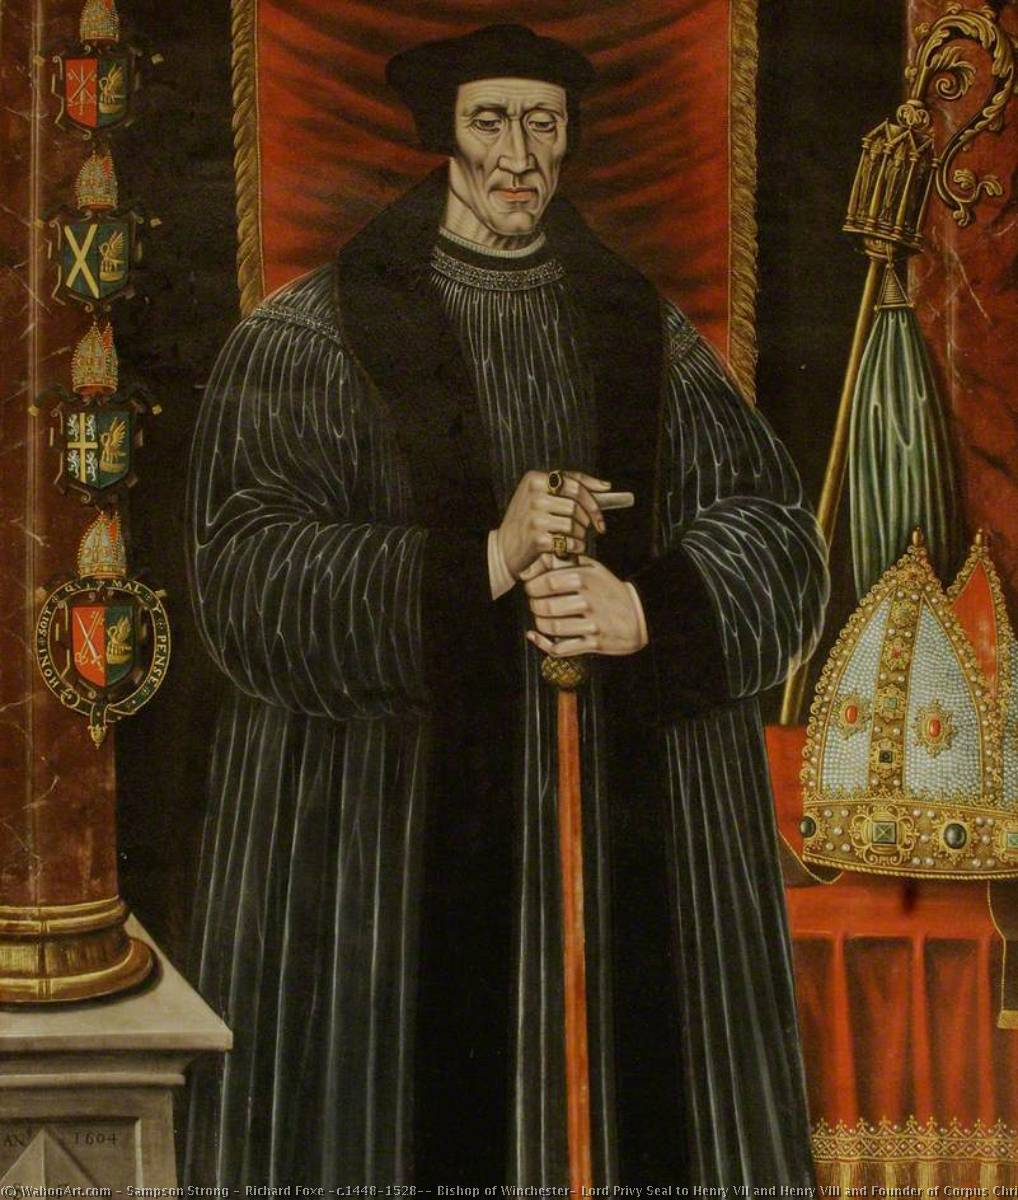 Richard Foxe (c.1448–1528), Bishop of Winchester, Lord Privy Seal to Henry VII and Henry VIII and Founder of Corpus Christi College, Oxford, Oil On Panel by Sampson Strong